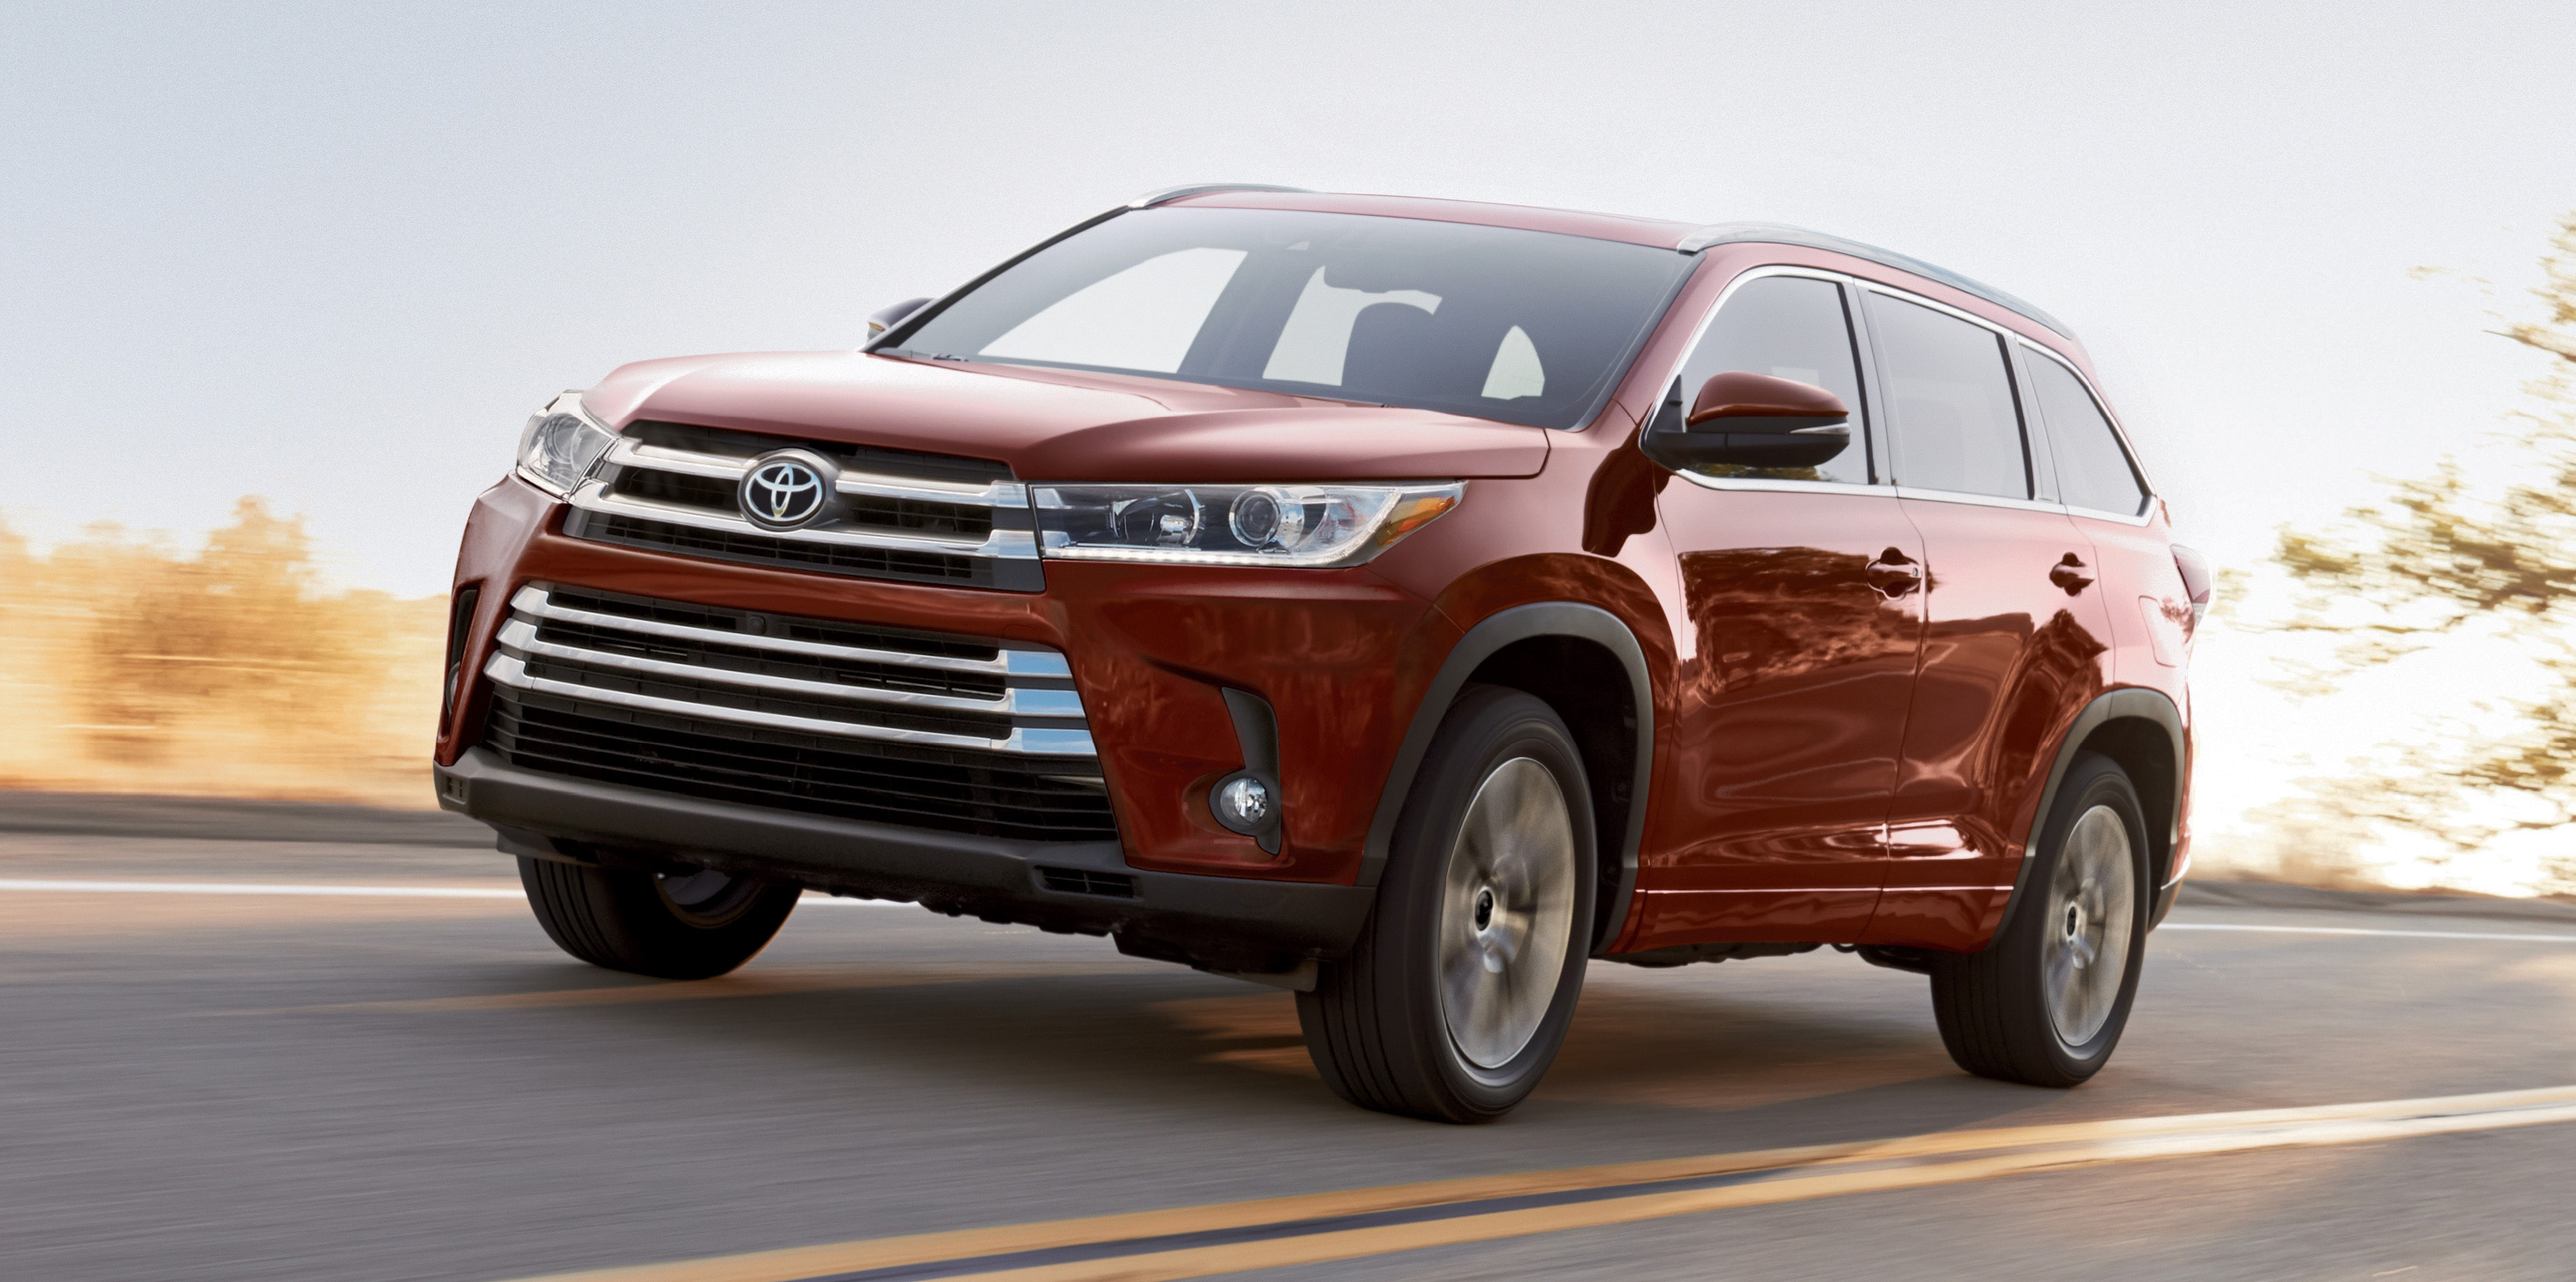 What Are The Features Of The 2019 Toyota Highlander